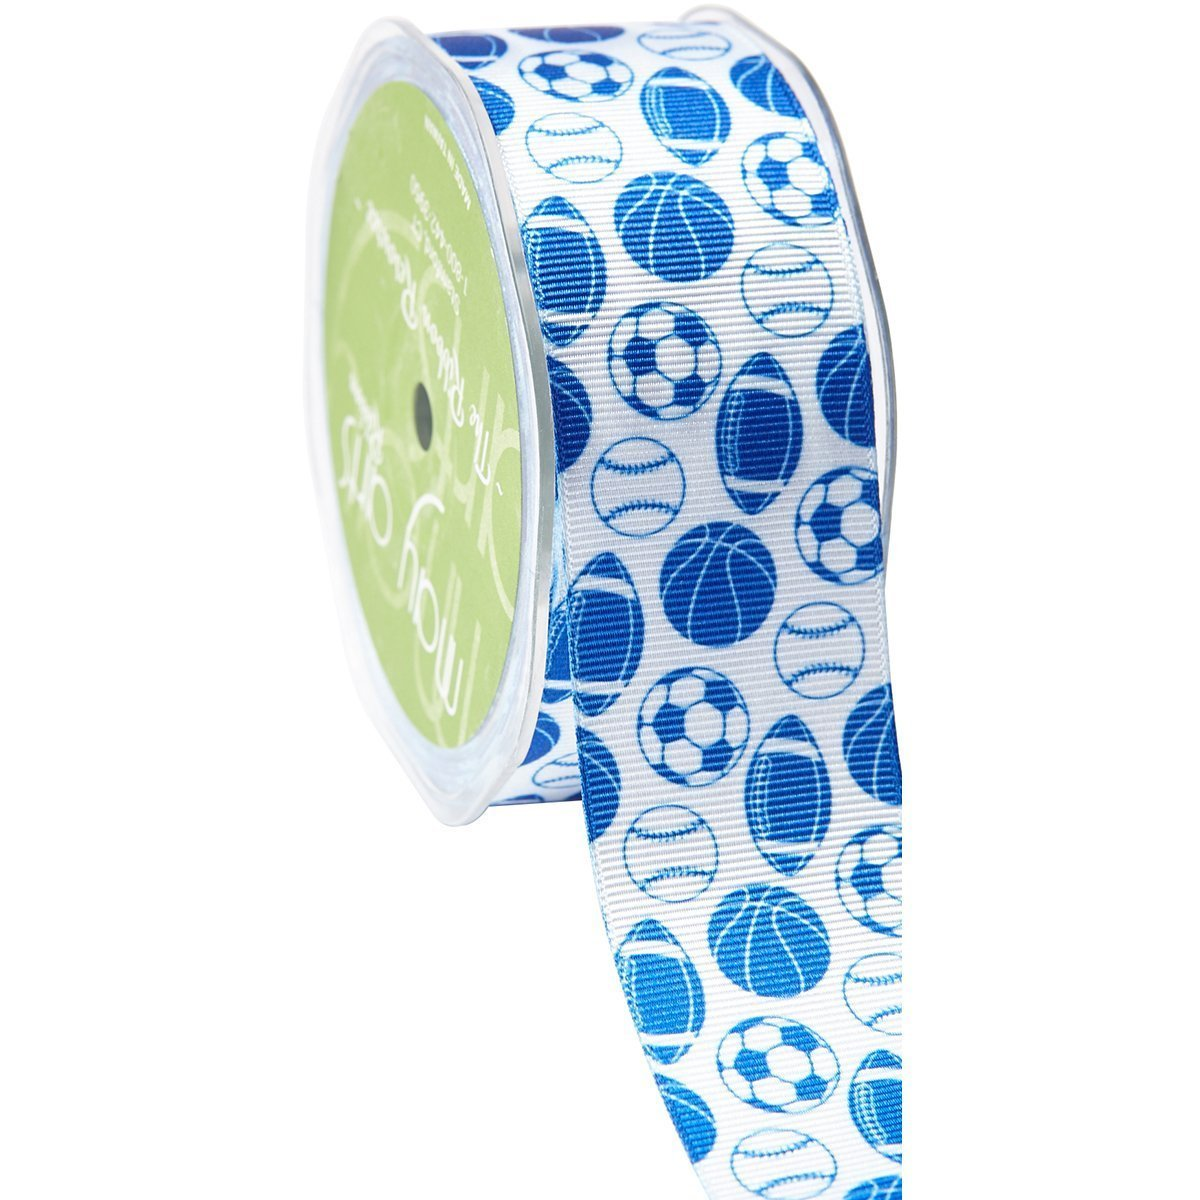 Amazon.com: May Arts All Sports Print Grosgrain Ribbon 1-1/2